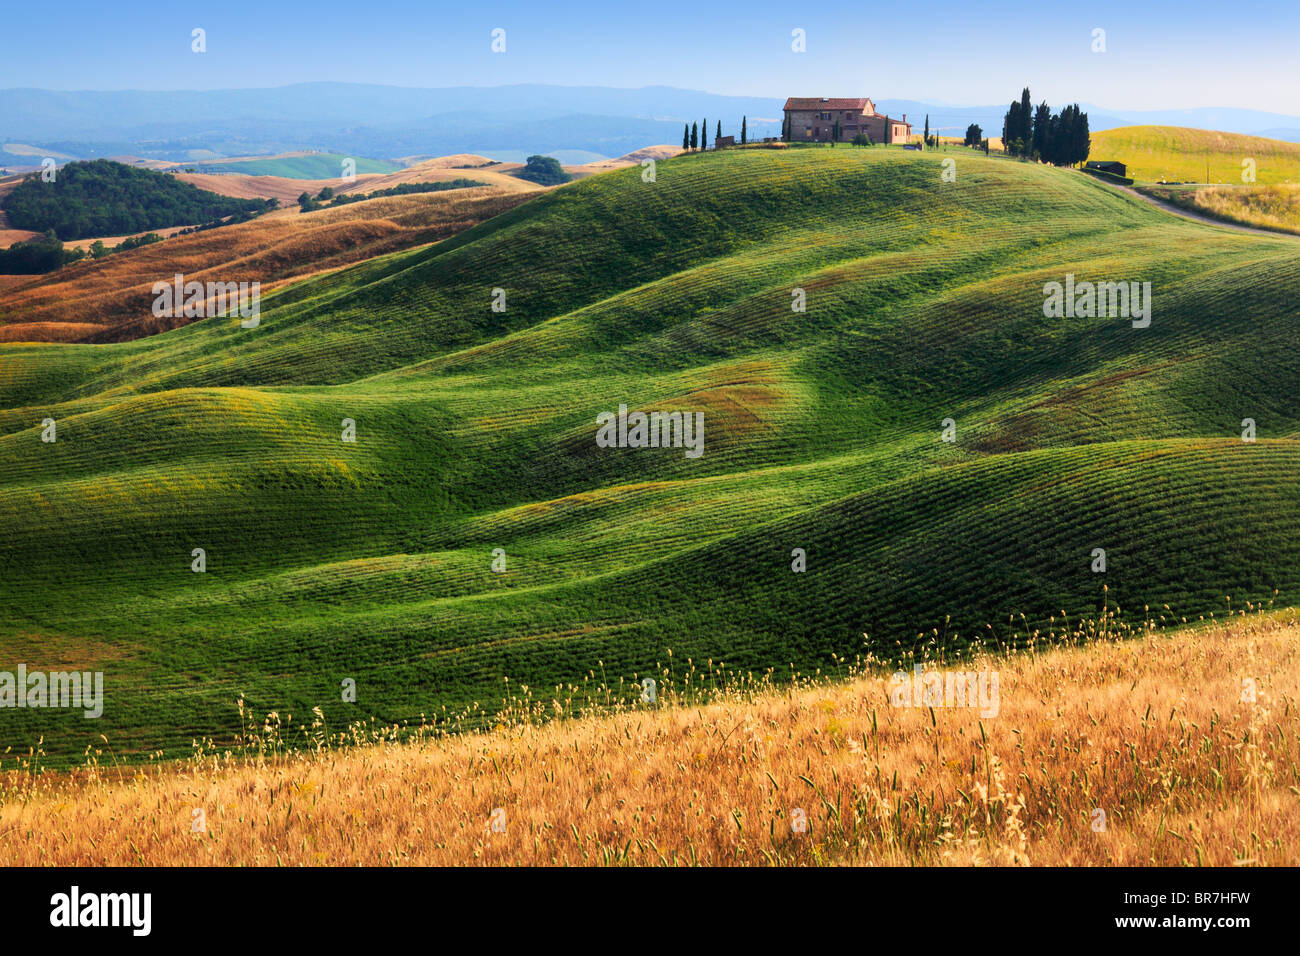 Hilltop villa near Asciano in central Tuscany, Italy - Stock Image